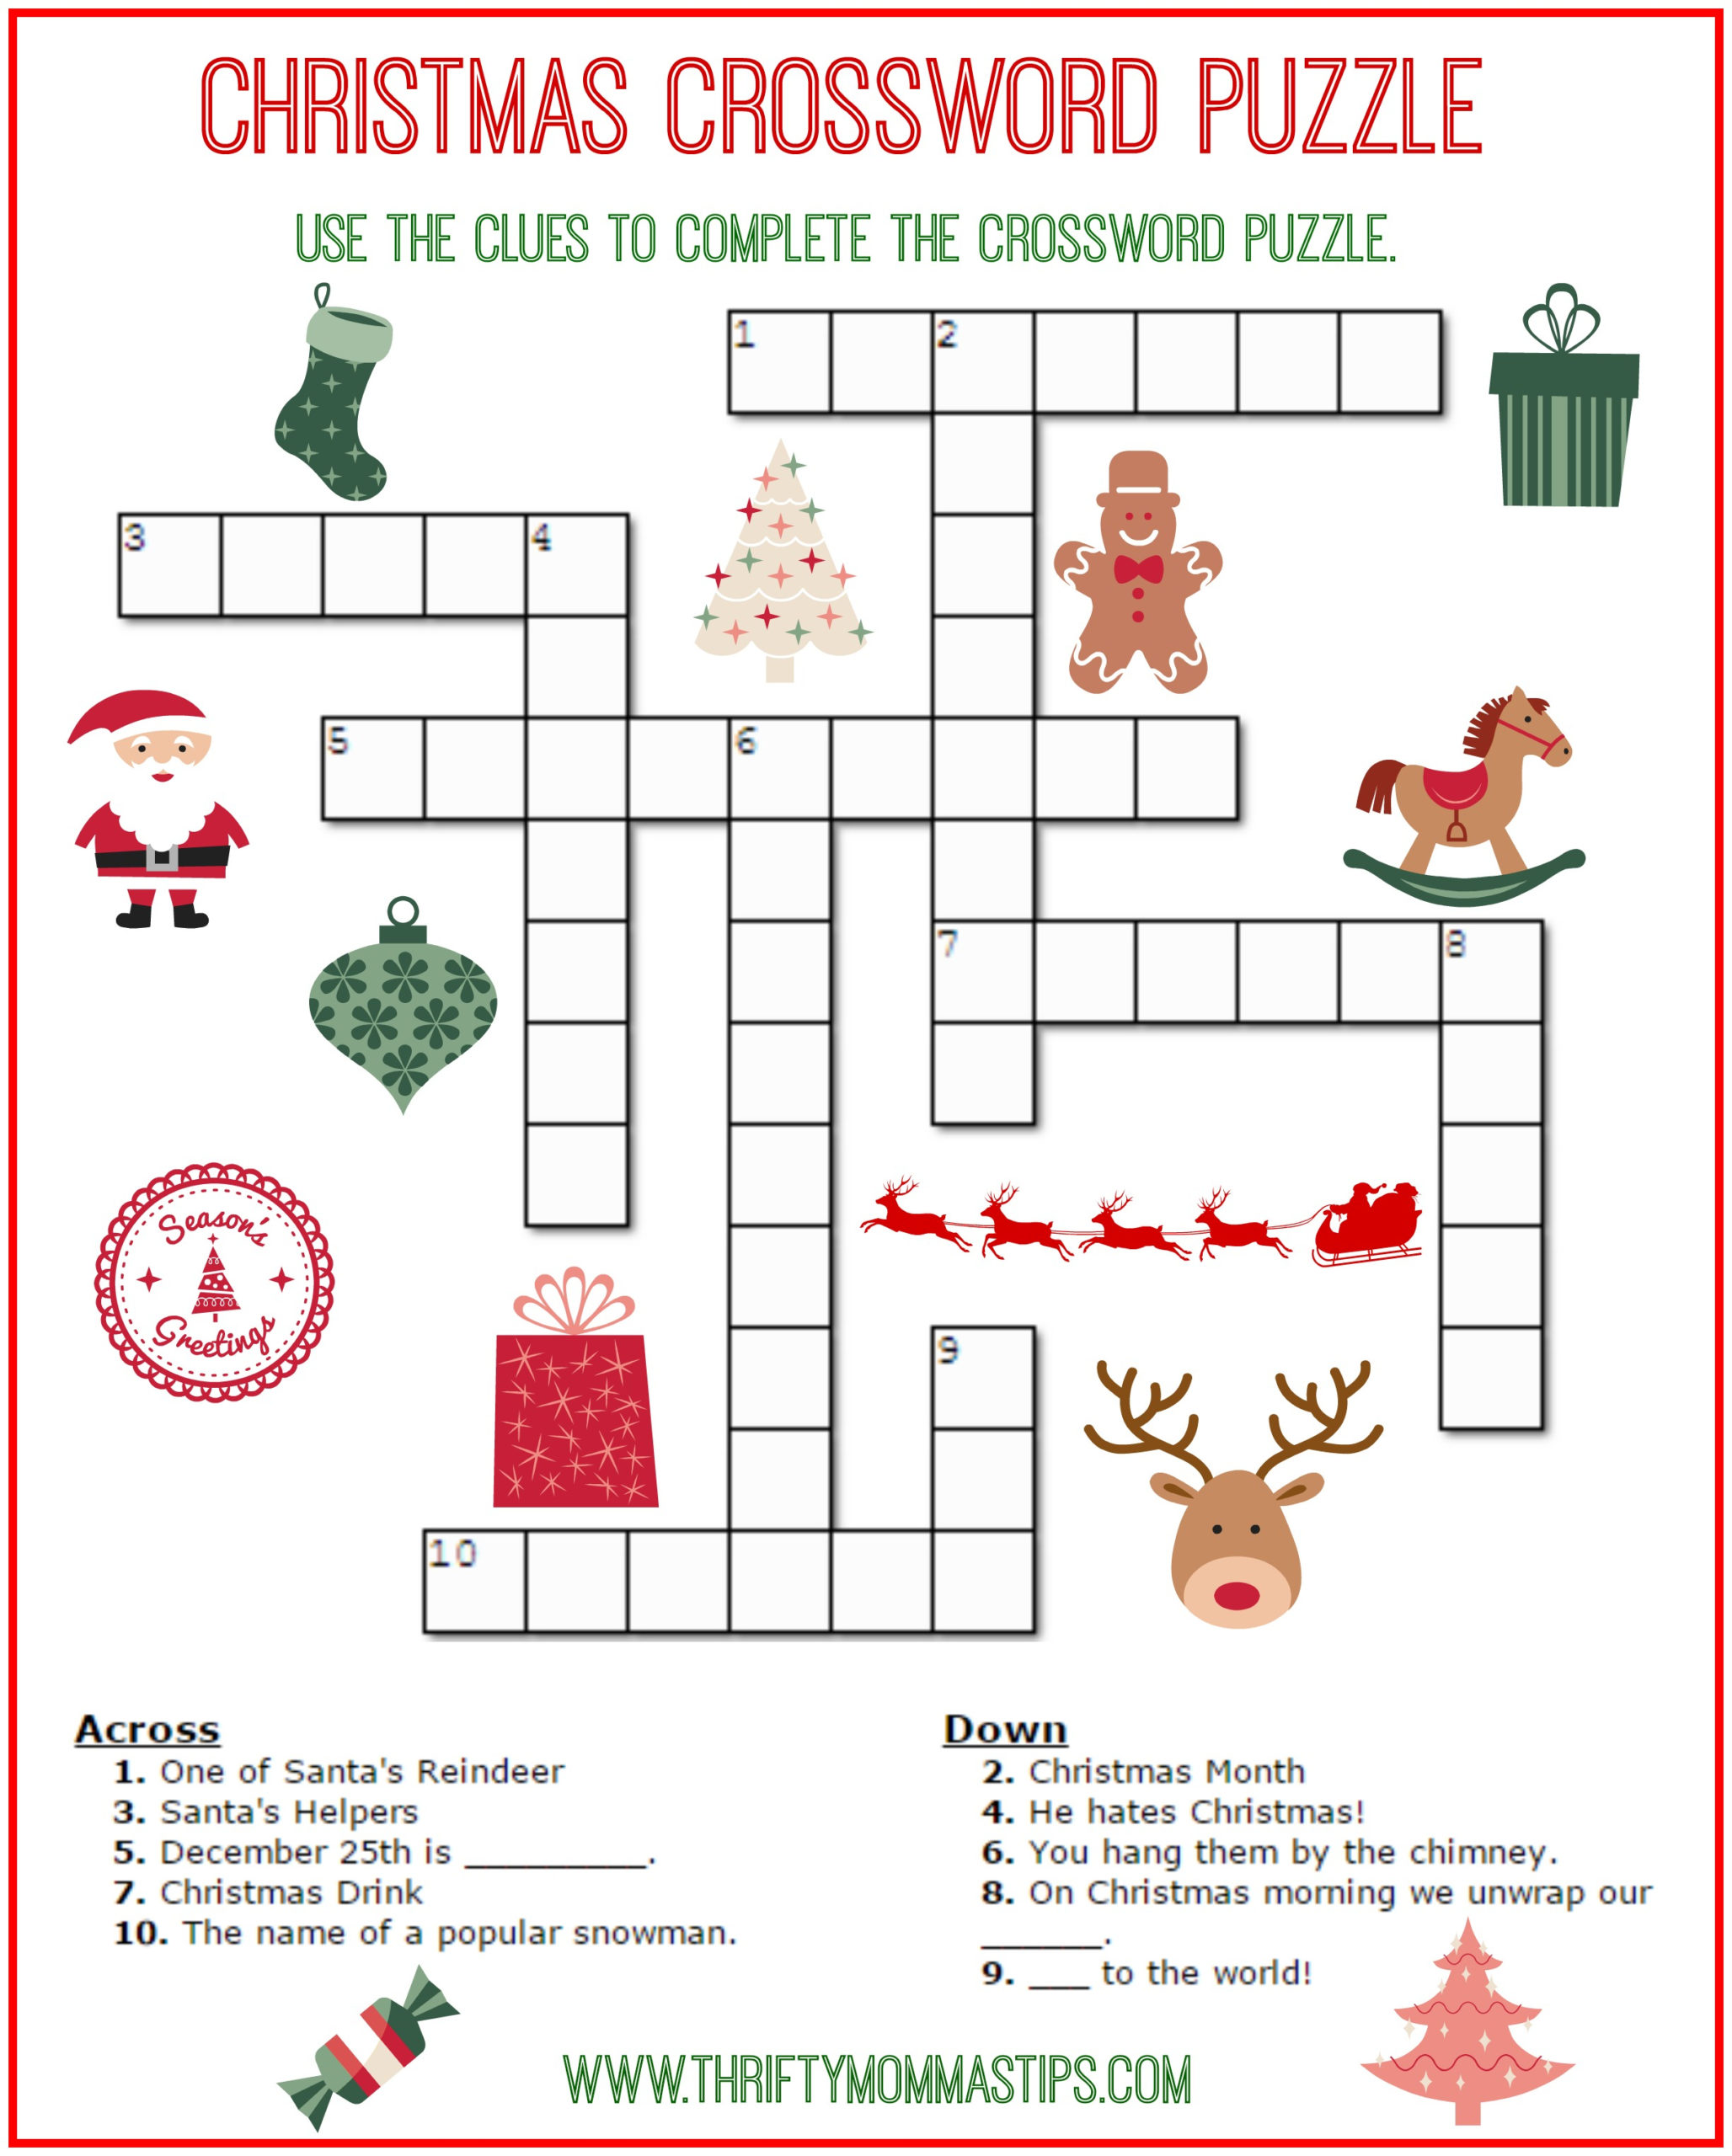 Free Printable Christmas Crossword Puzzles With Answers